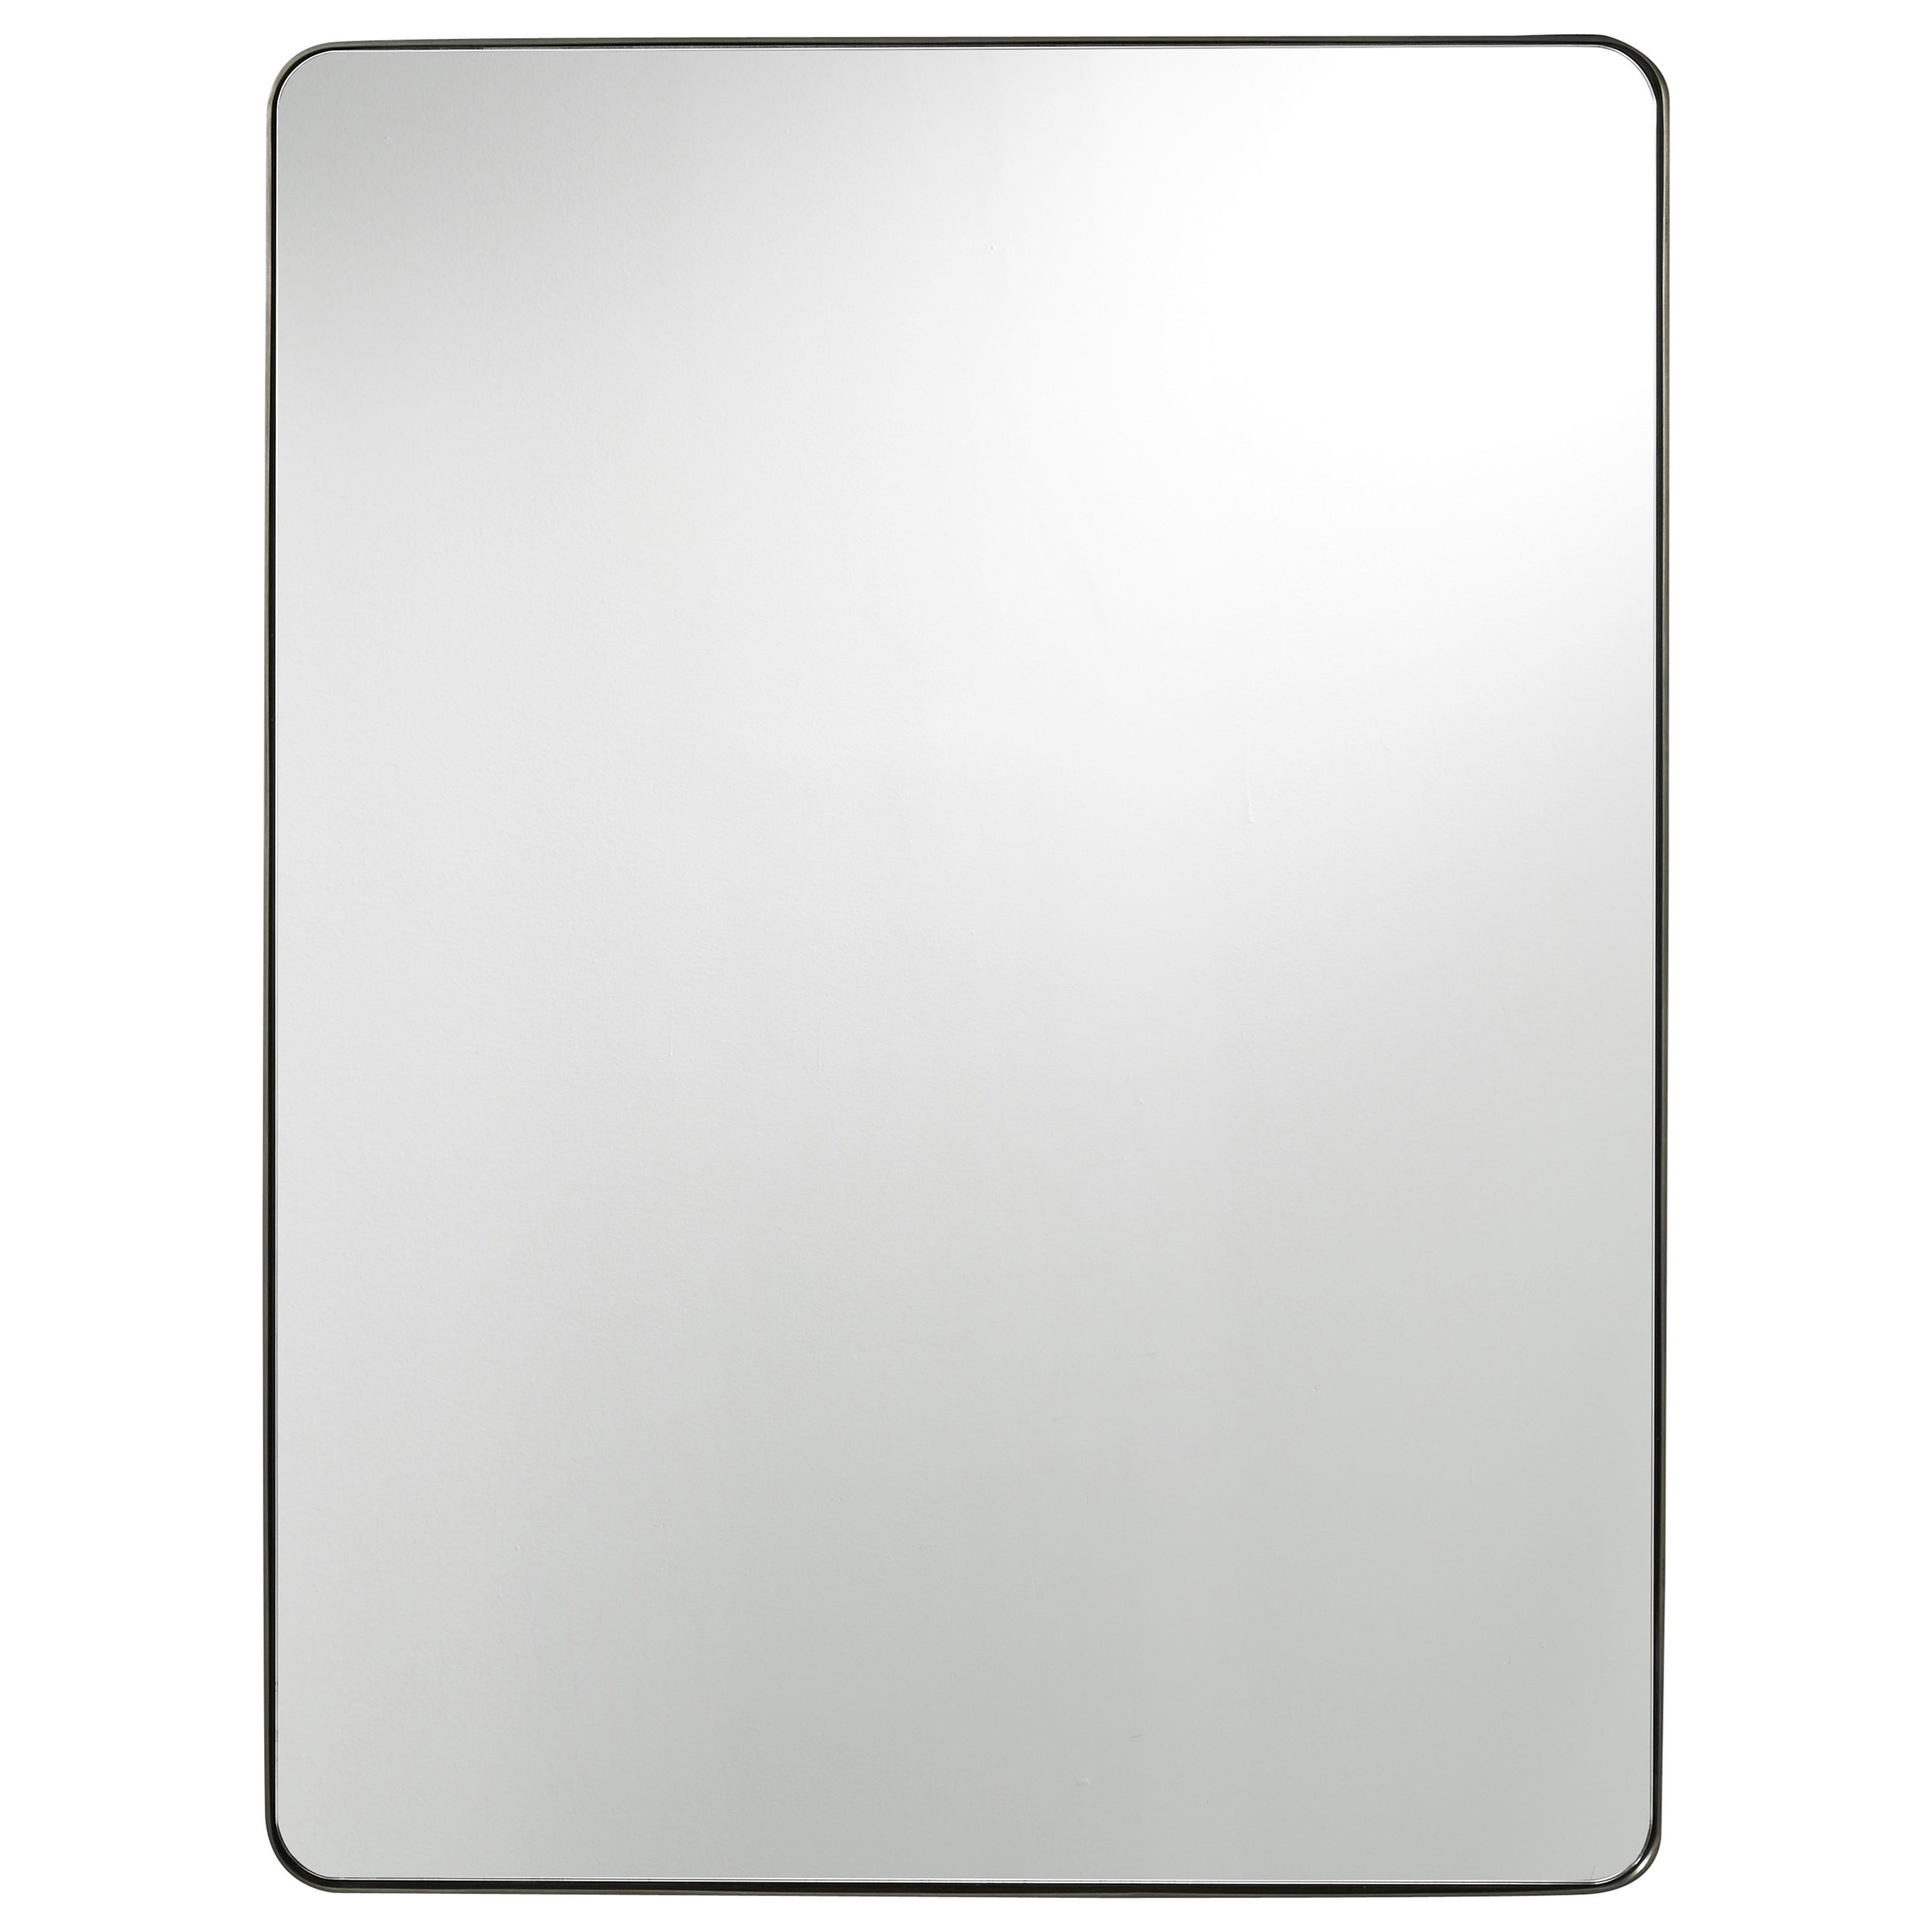 Universal Modern Accent Mirror Reeds Furniture Wall Mirrors